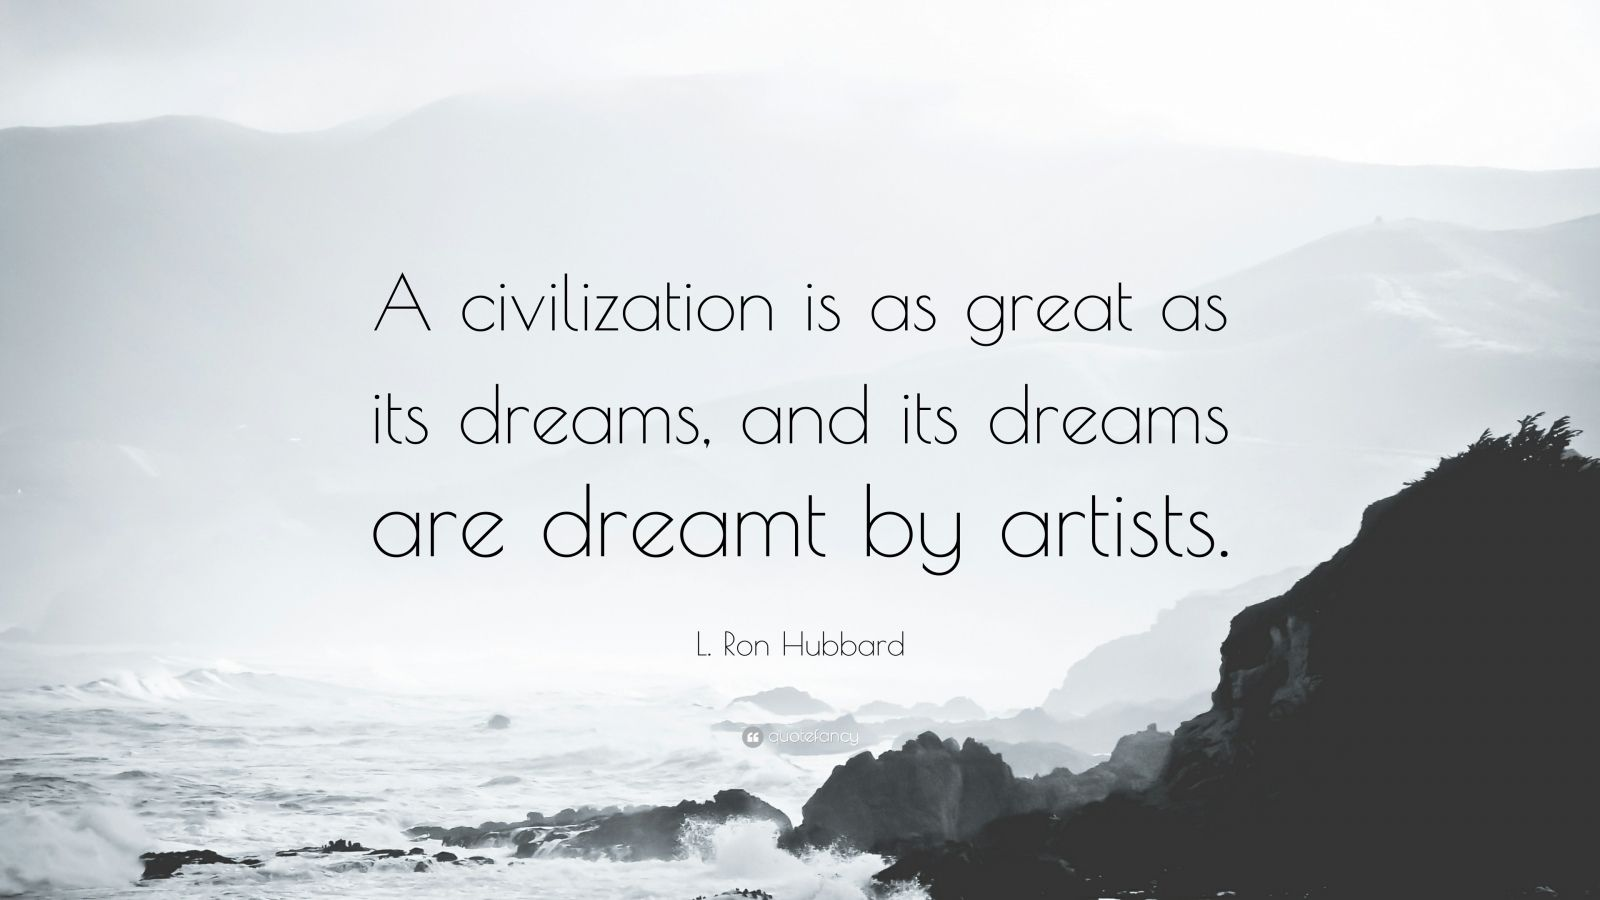 """L. Ron Hubbard Quote: """"A civilization is as great as its dreams, and its dreams are dreamt by artists."""""""